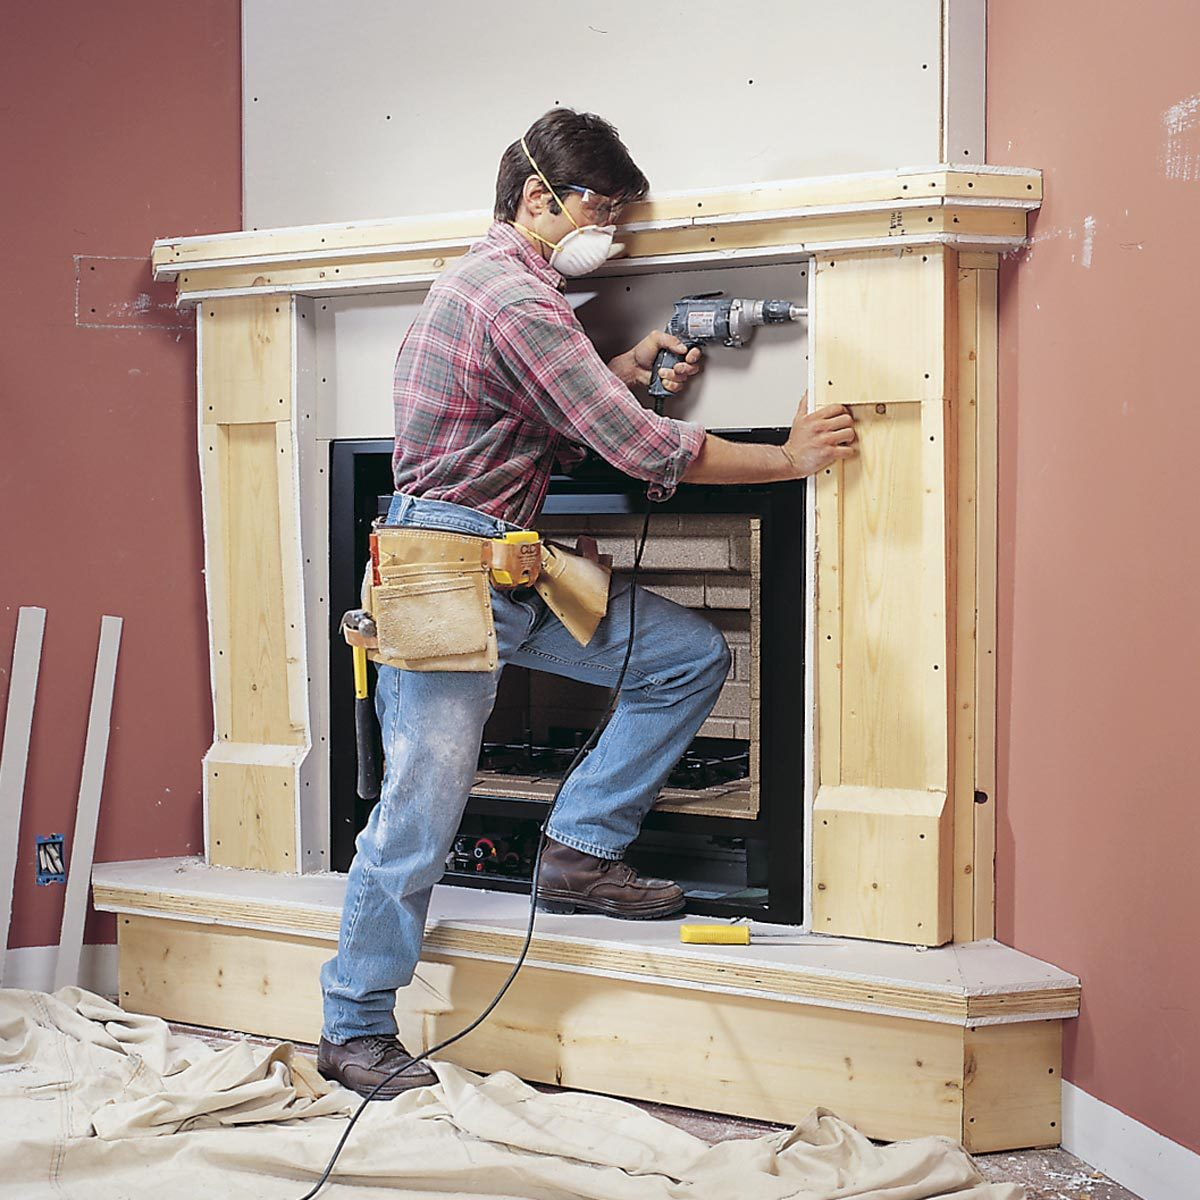 Running Gas Line To Fireplace How To Install A Gas Fireplace Diy Built In Gas Fireplace The